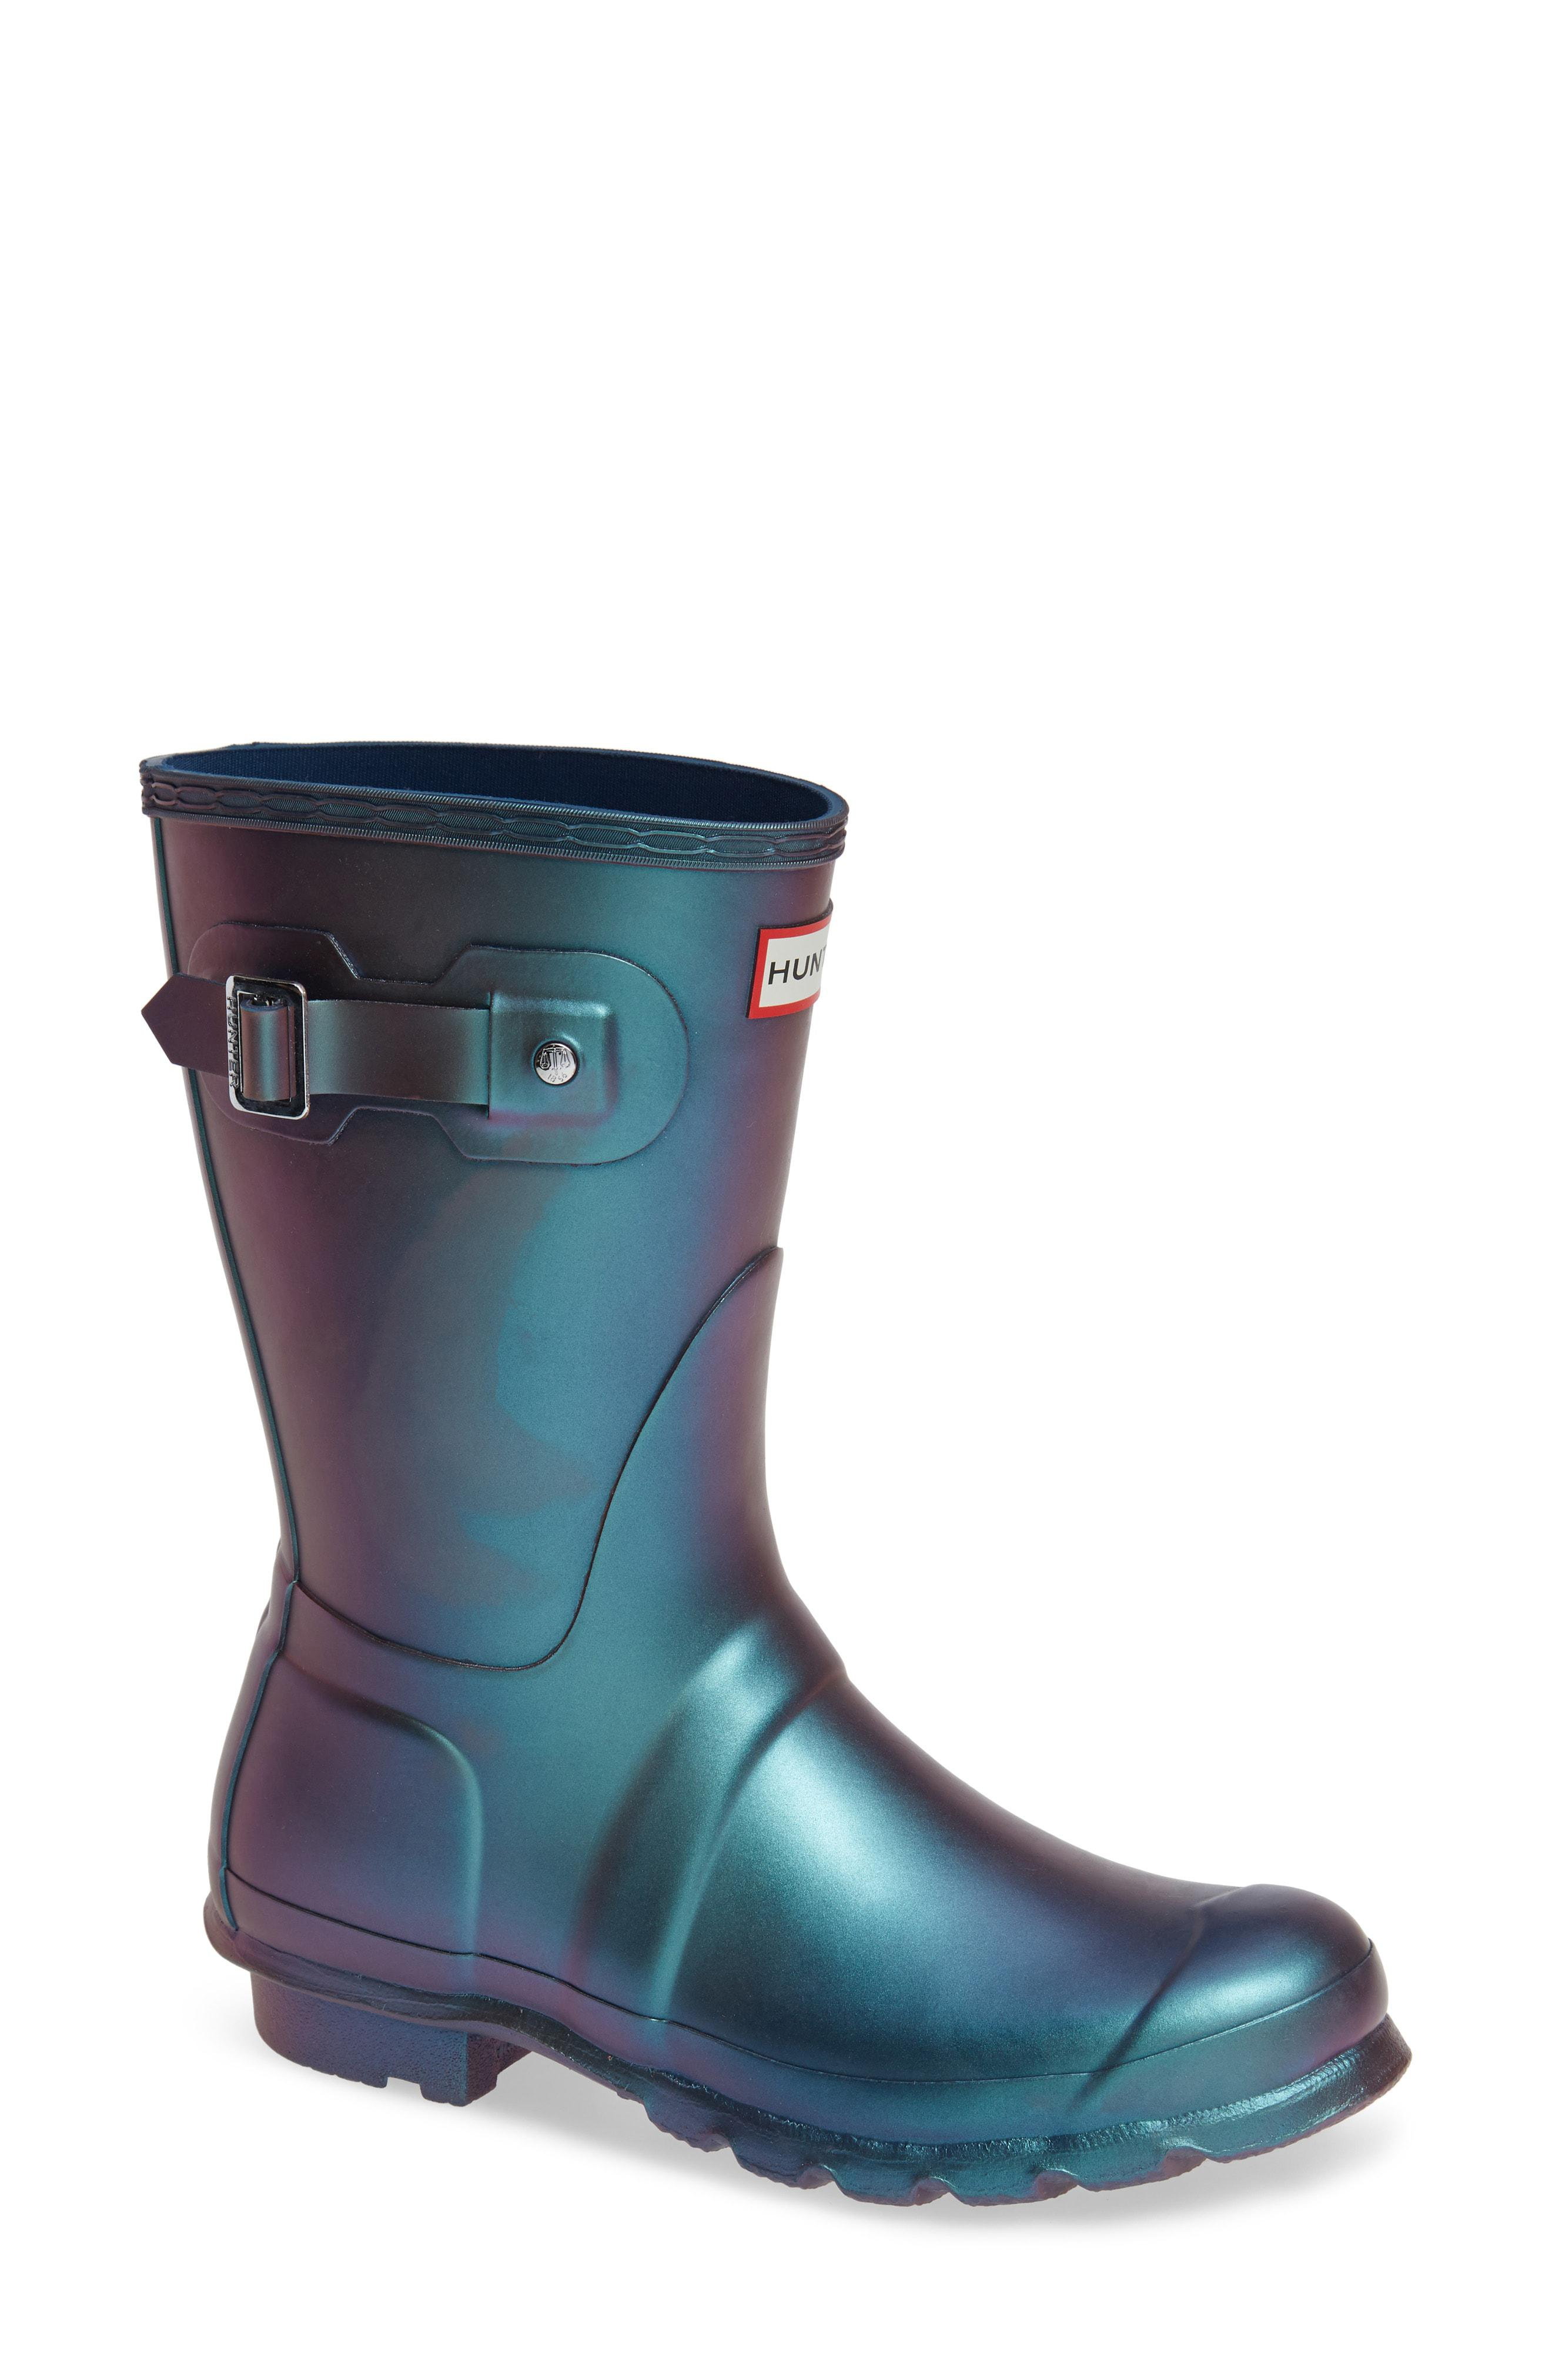 61386f36430 Hunter Original Short Nebula Rain Boot in Blue - Lyst